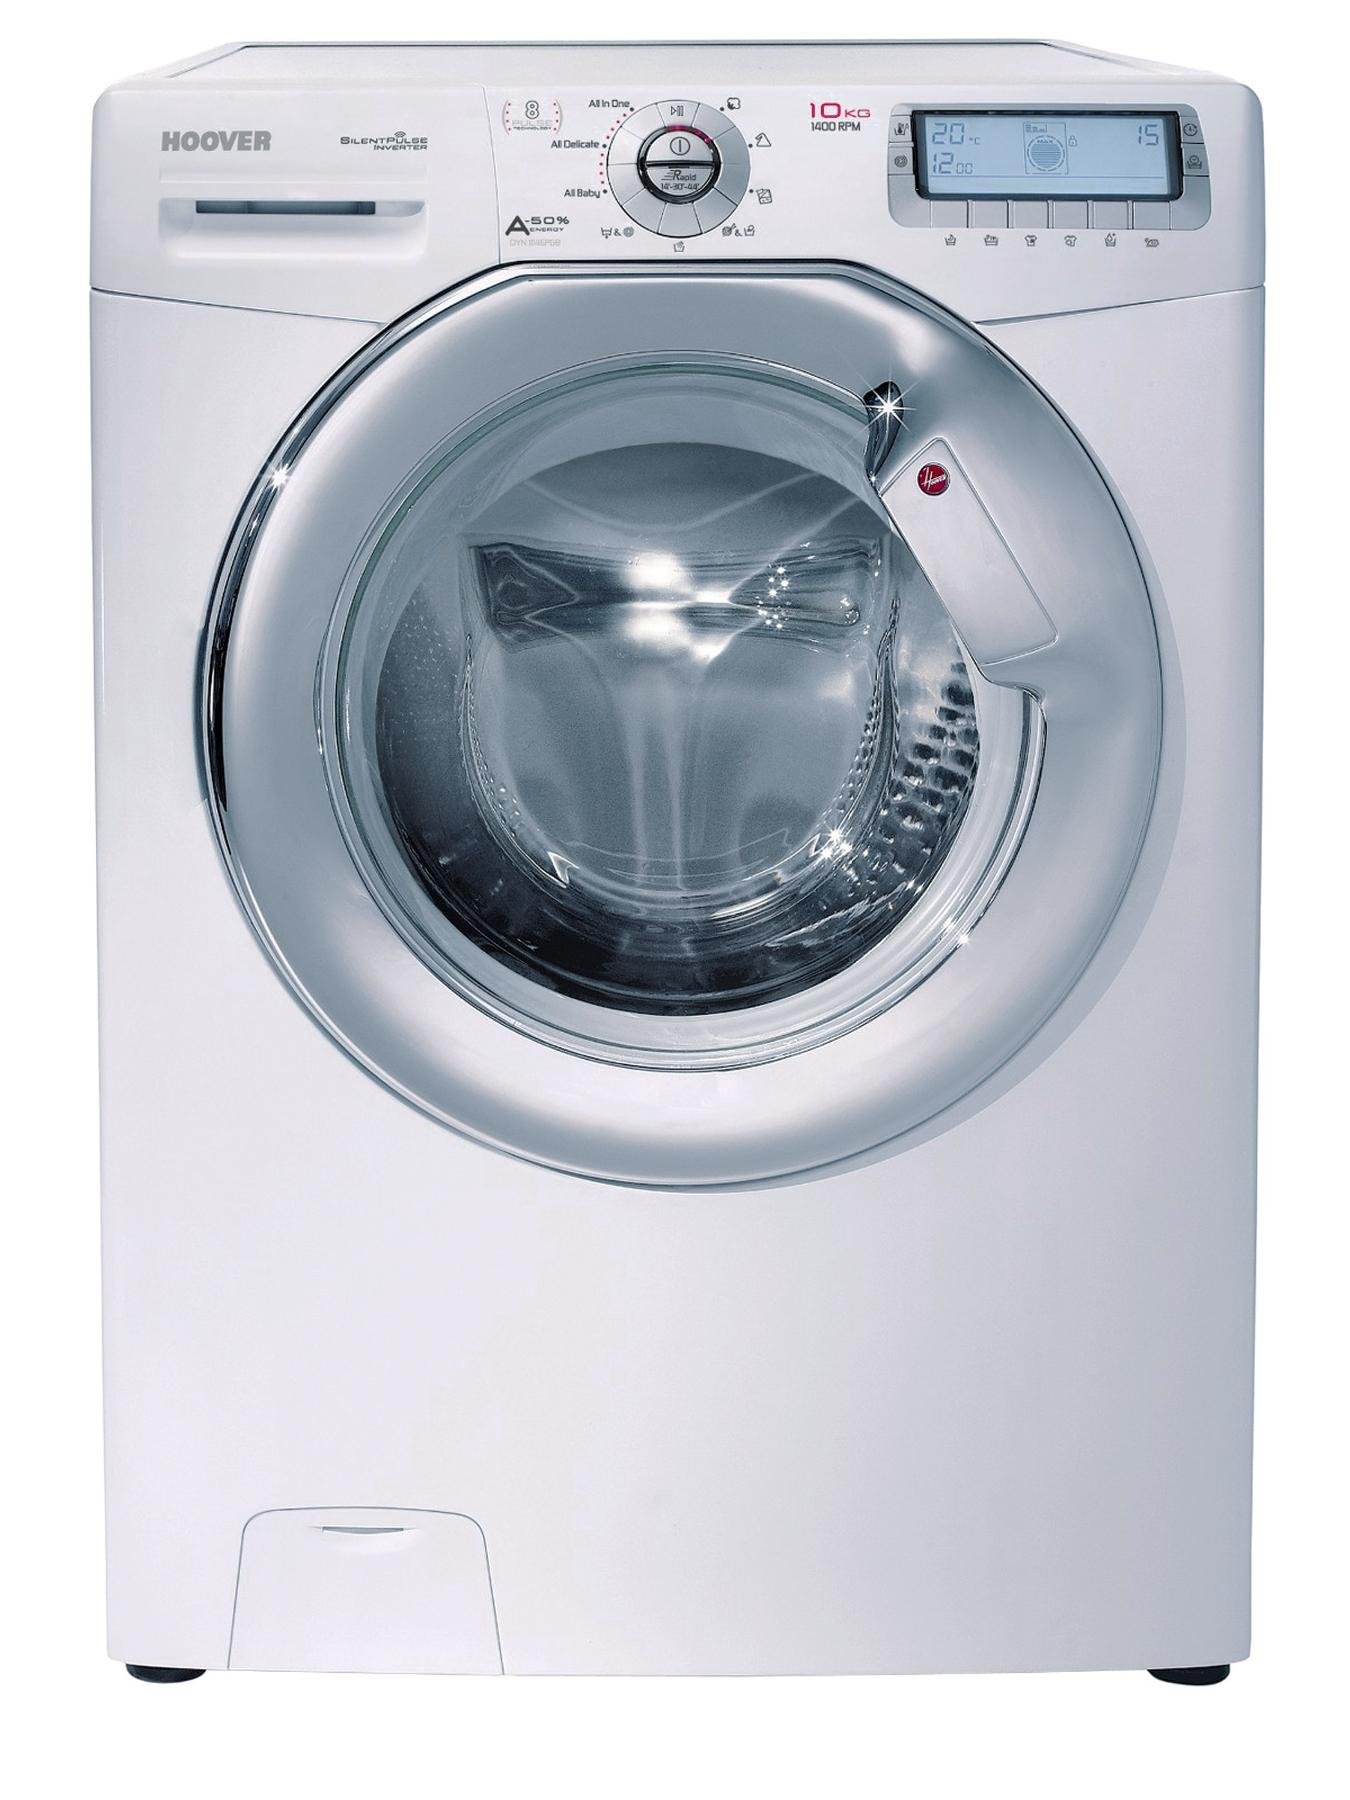 DYN10146PG8 AIO 1400 Spin, 10kg Load Washing Machine - White